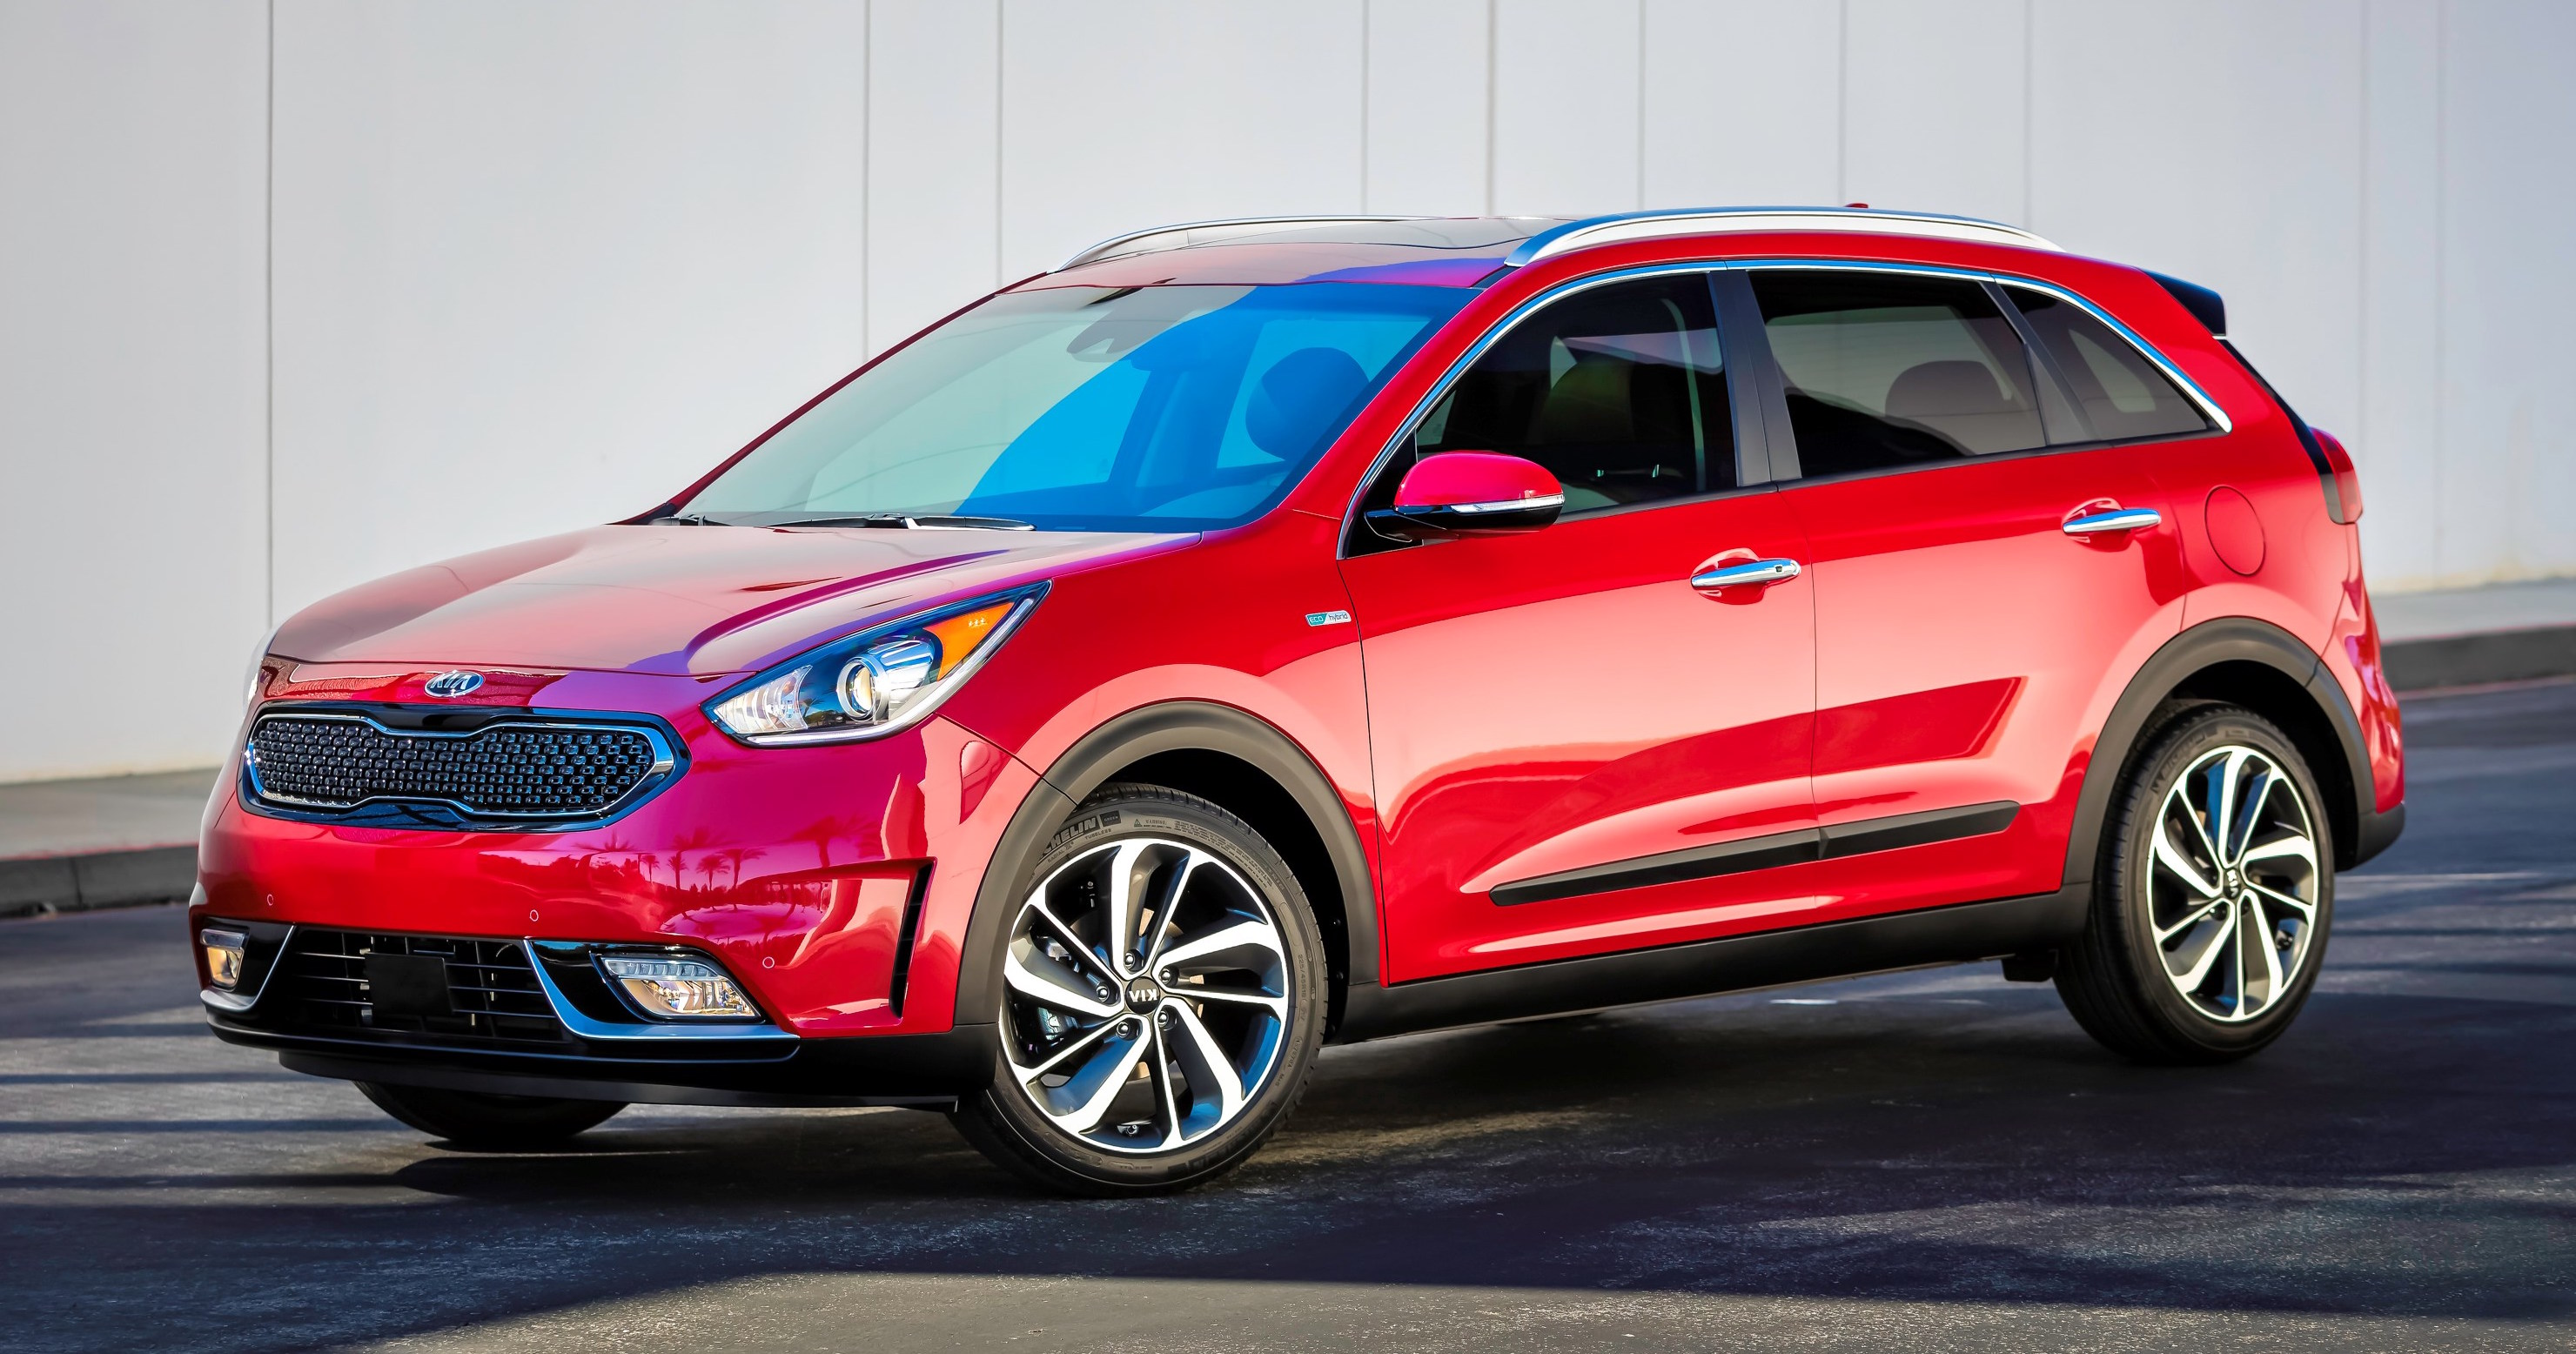 kia niro hybrid b segment suv debuts in chicago. Black Bedroom Furniture Sets. Home Design Ideas